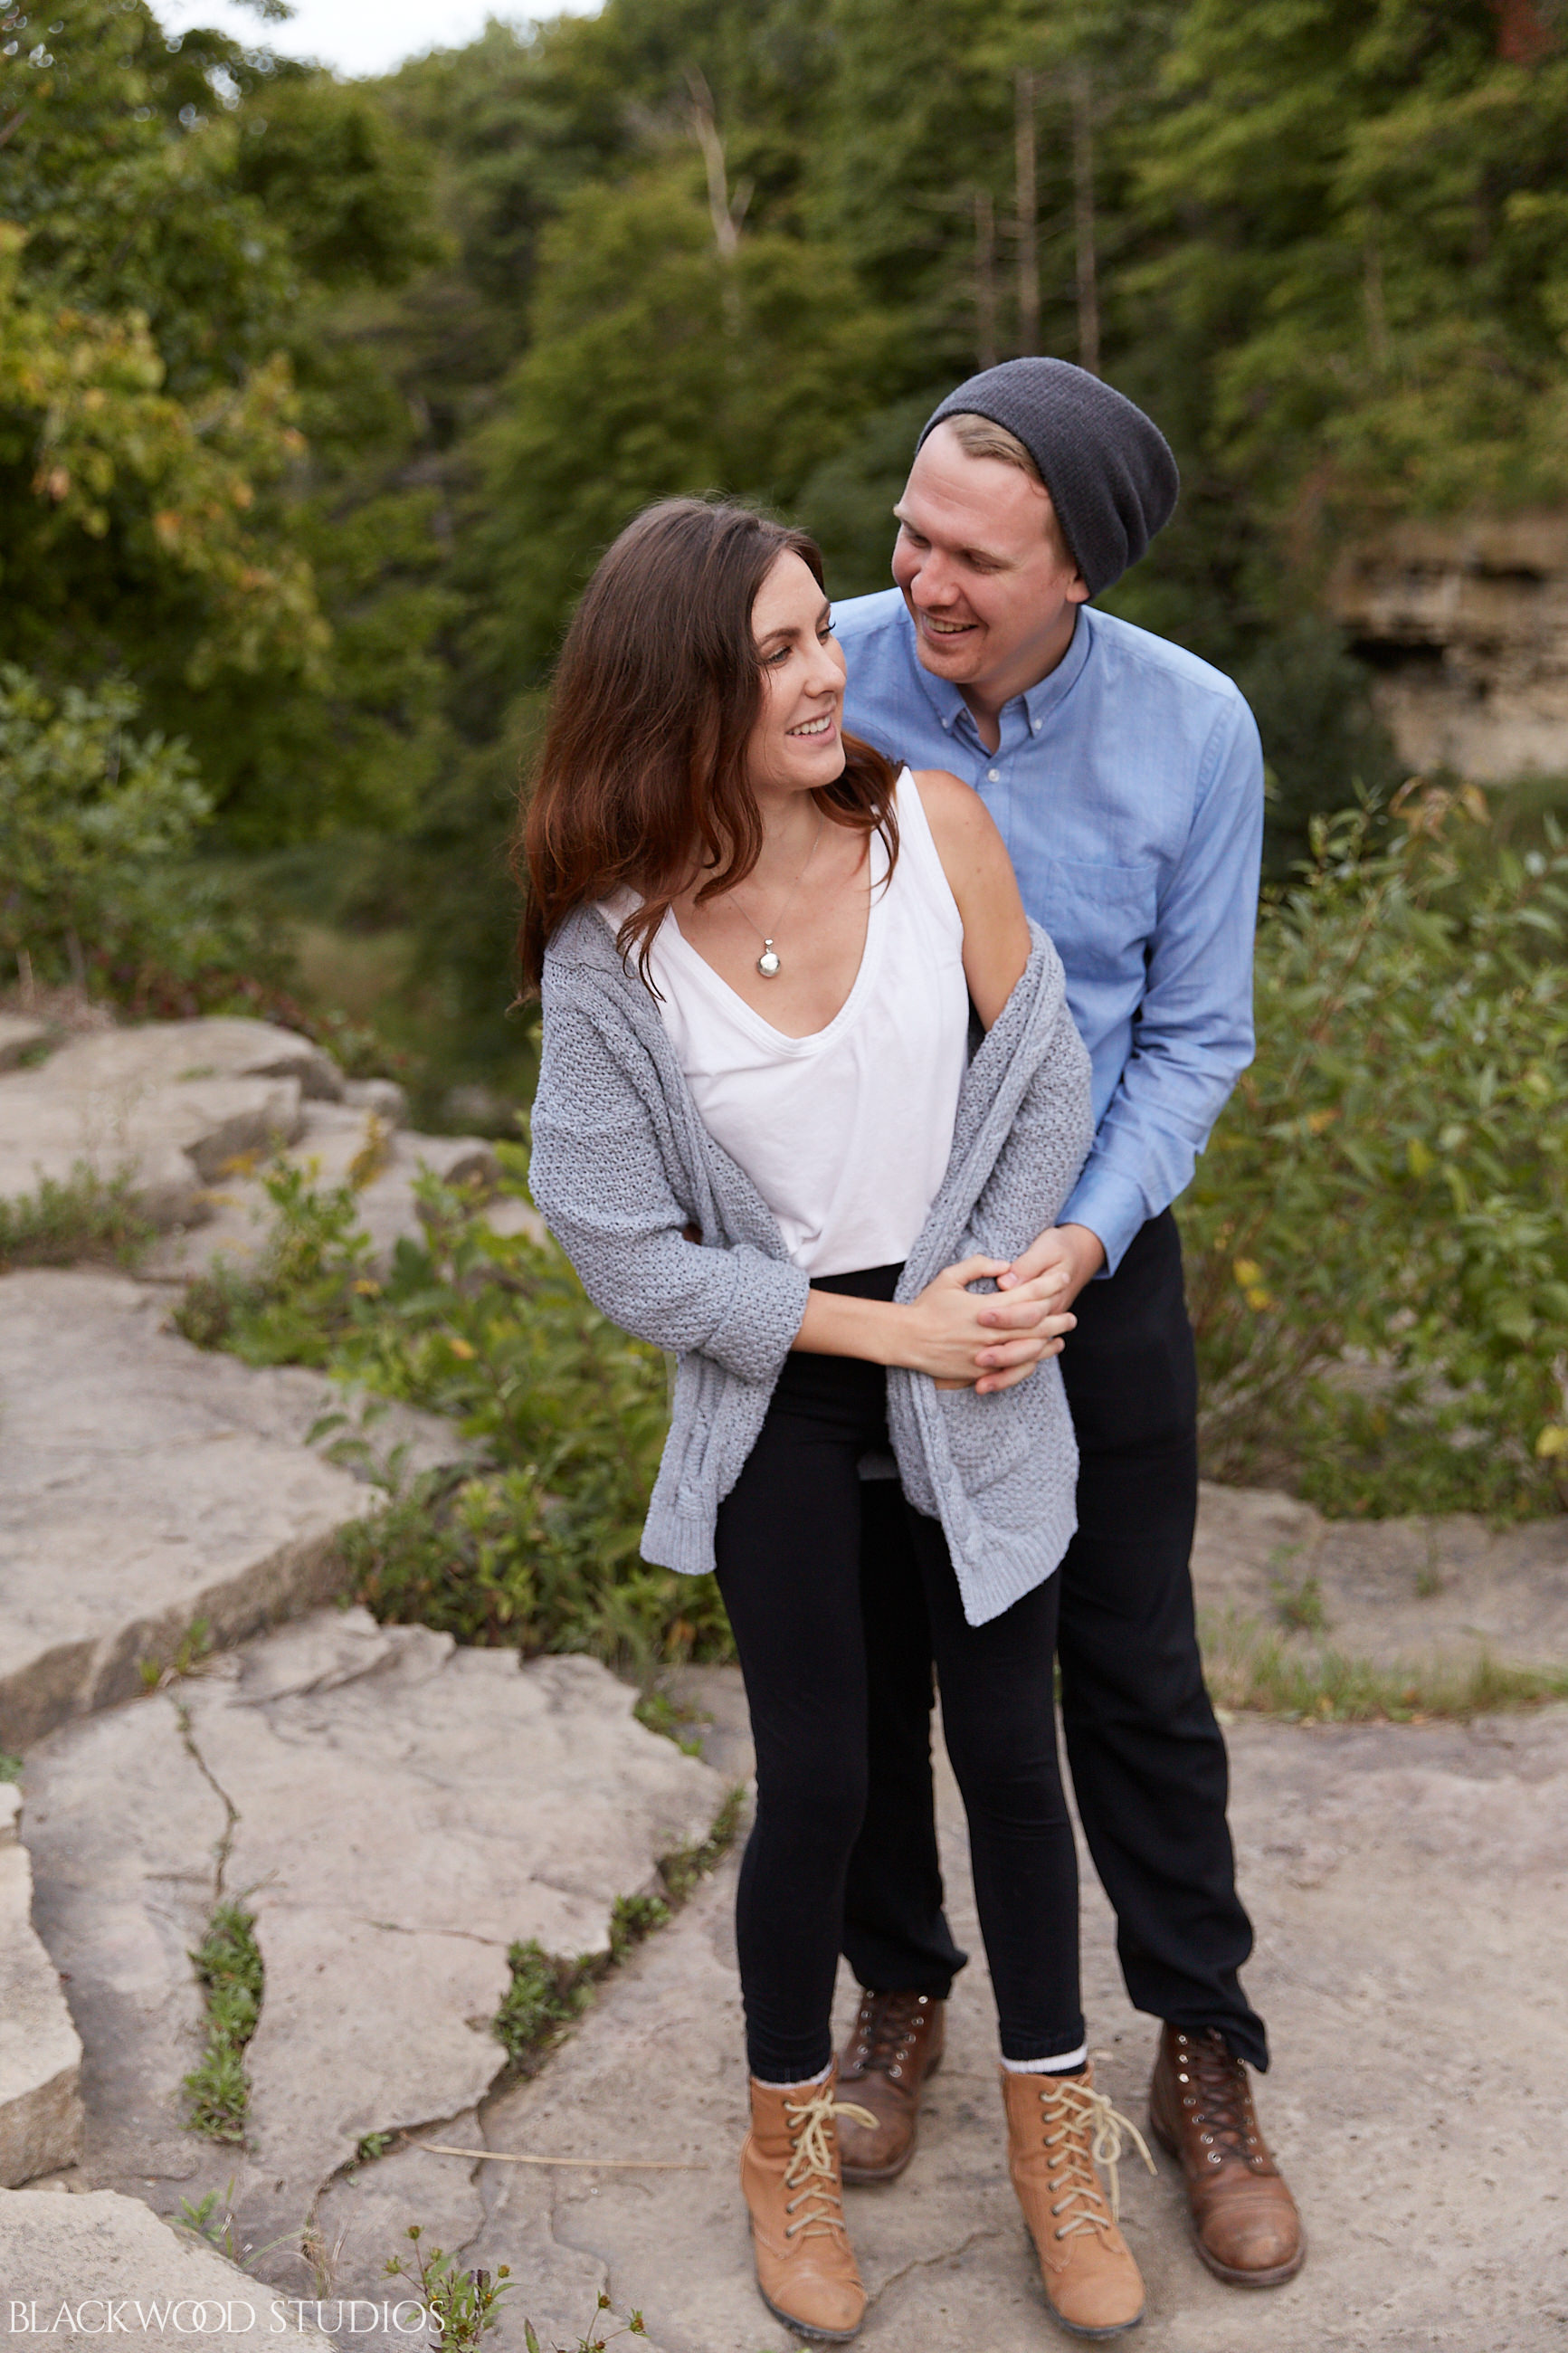 Blackwood-Studios-photography-20180922-190502-Jeff-and-Raven-Engagement-0845-Balls-Falls-Conservation-Area-Lincoln-Niagara-Ontario.jpg